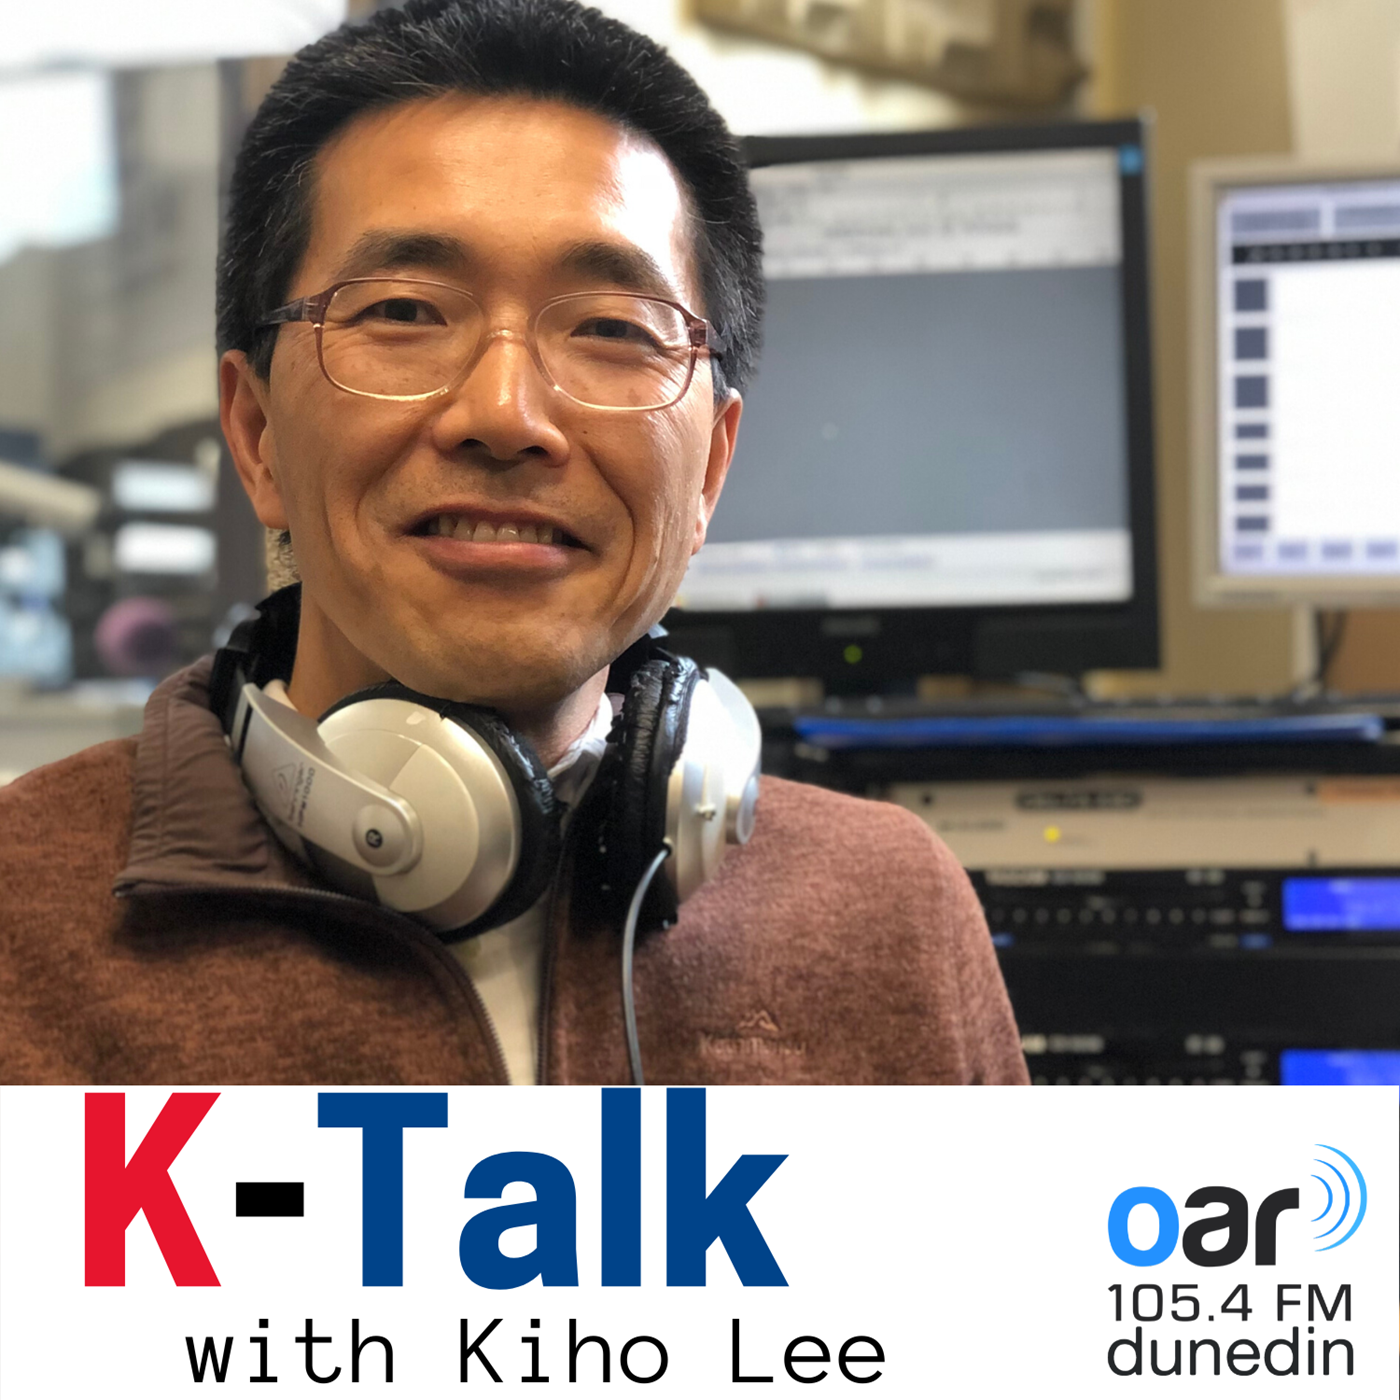 K-Talk with Kiho Lee